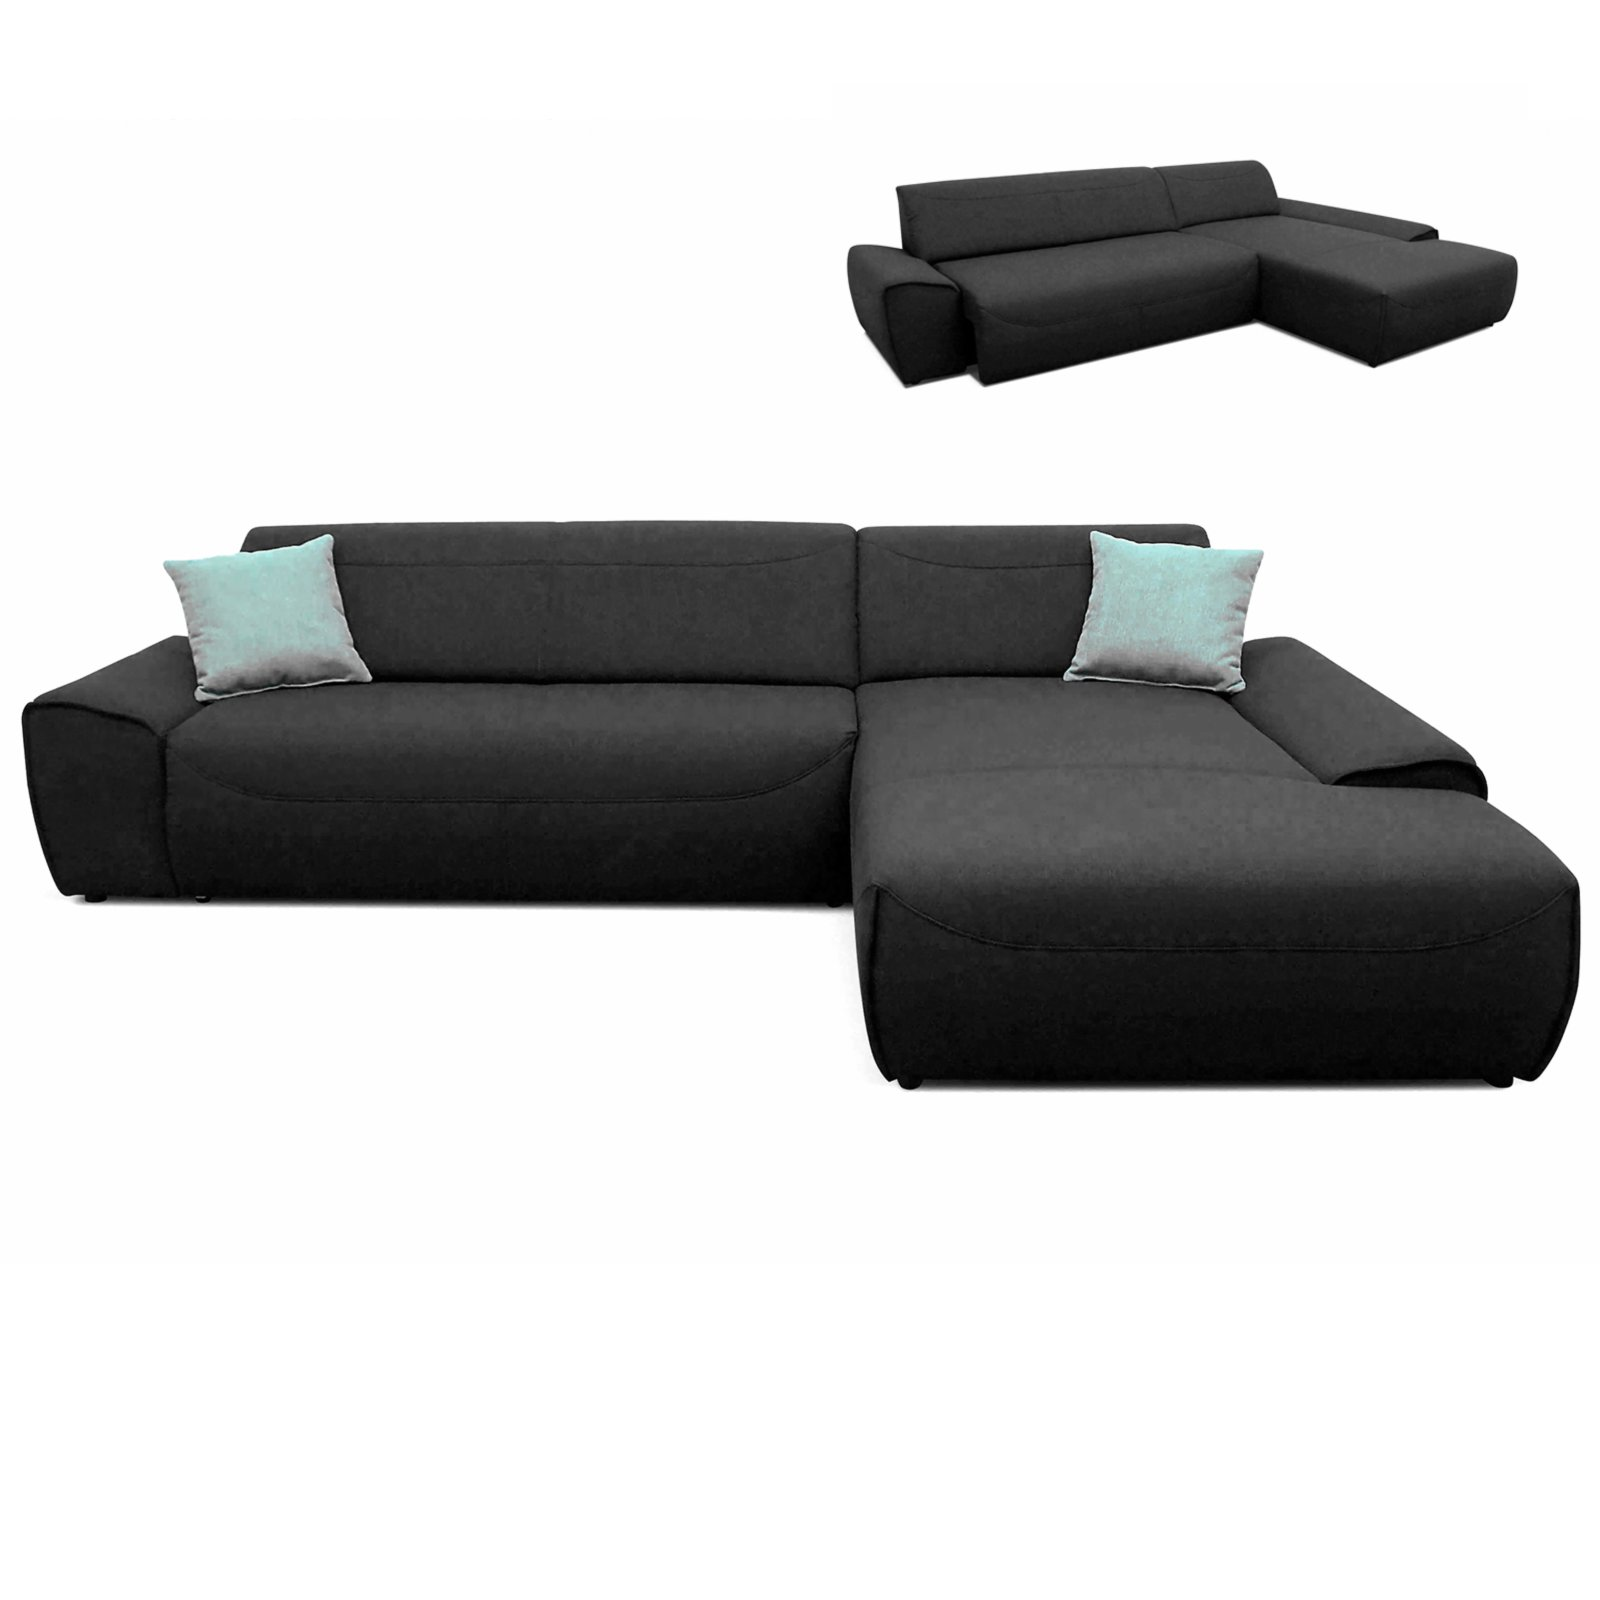 Ecksofa anthrazit sitzauszug links ecksofas l form for Ecksofa 3 00 m